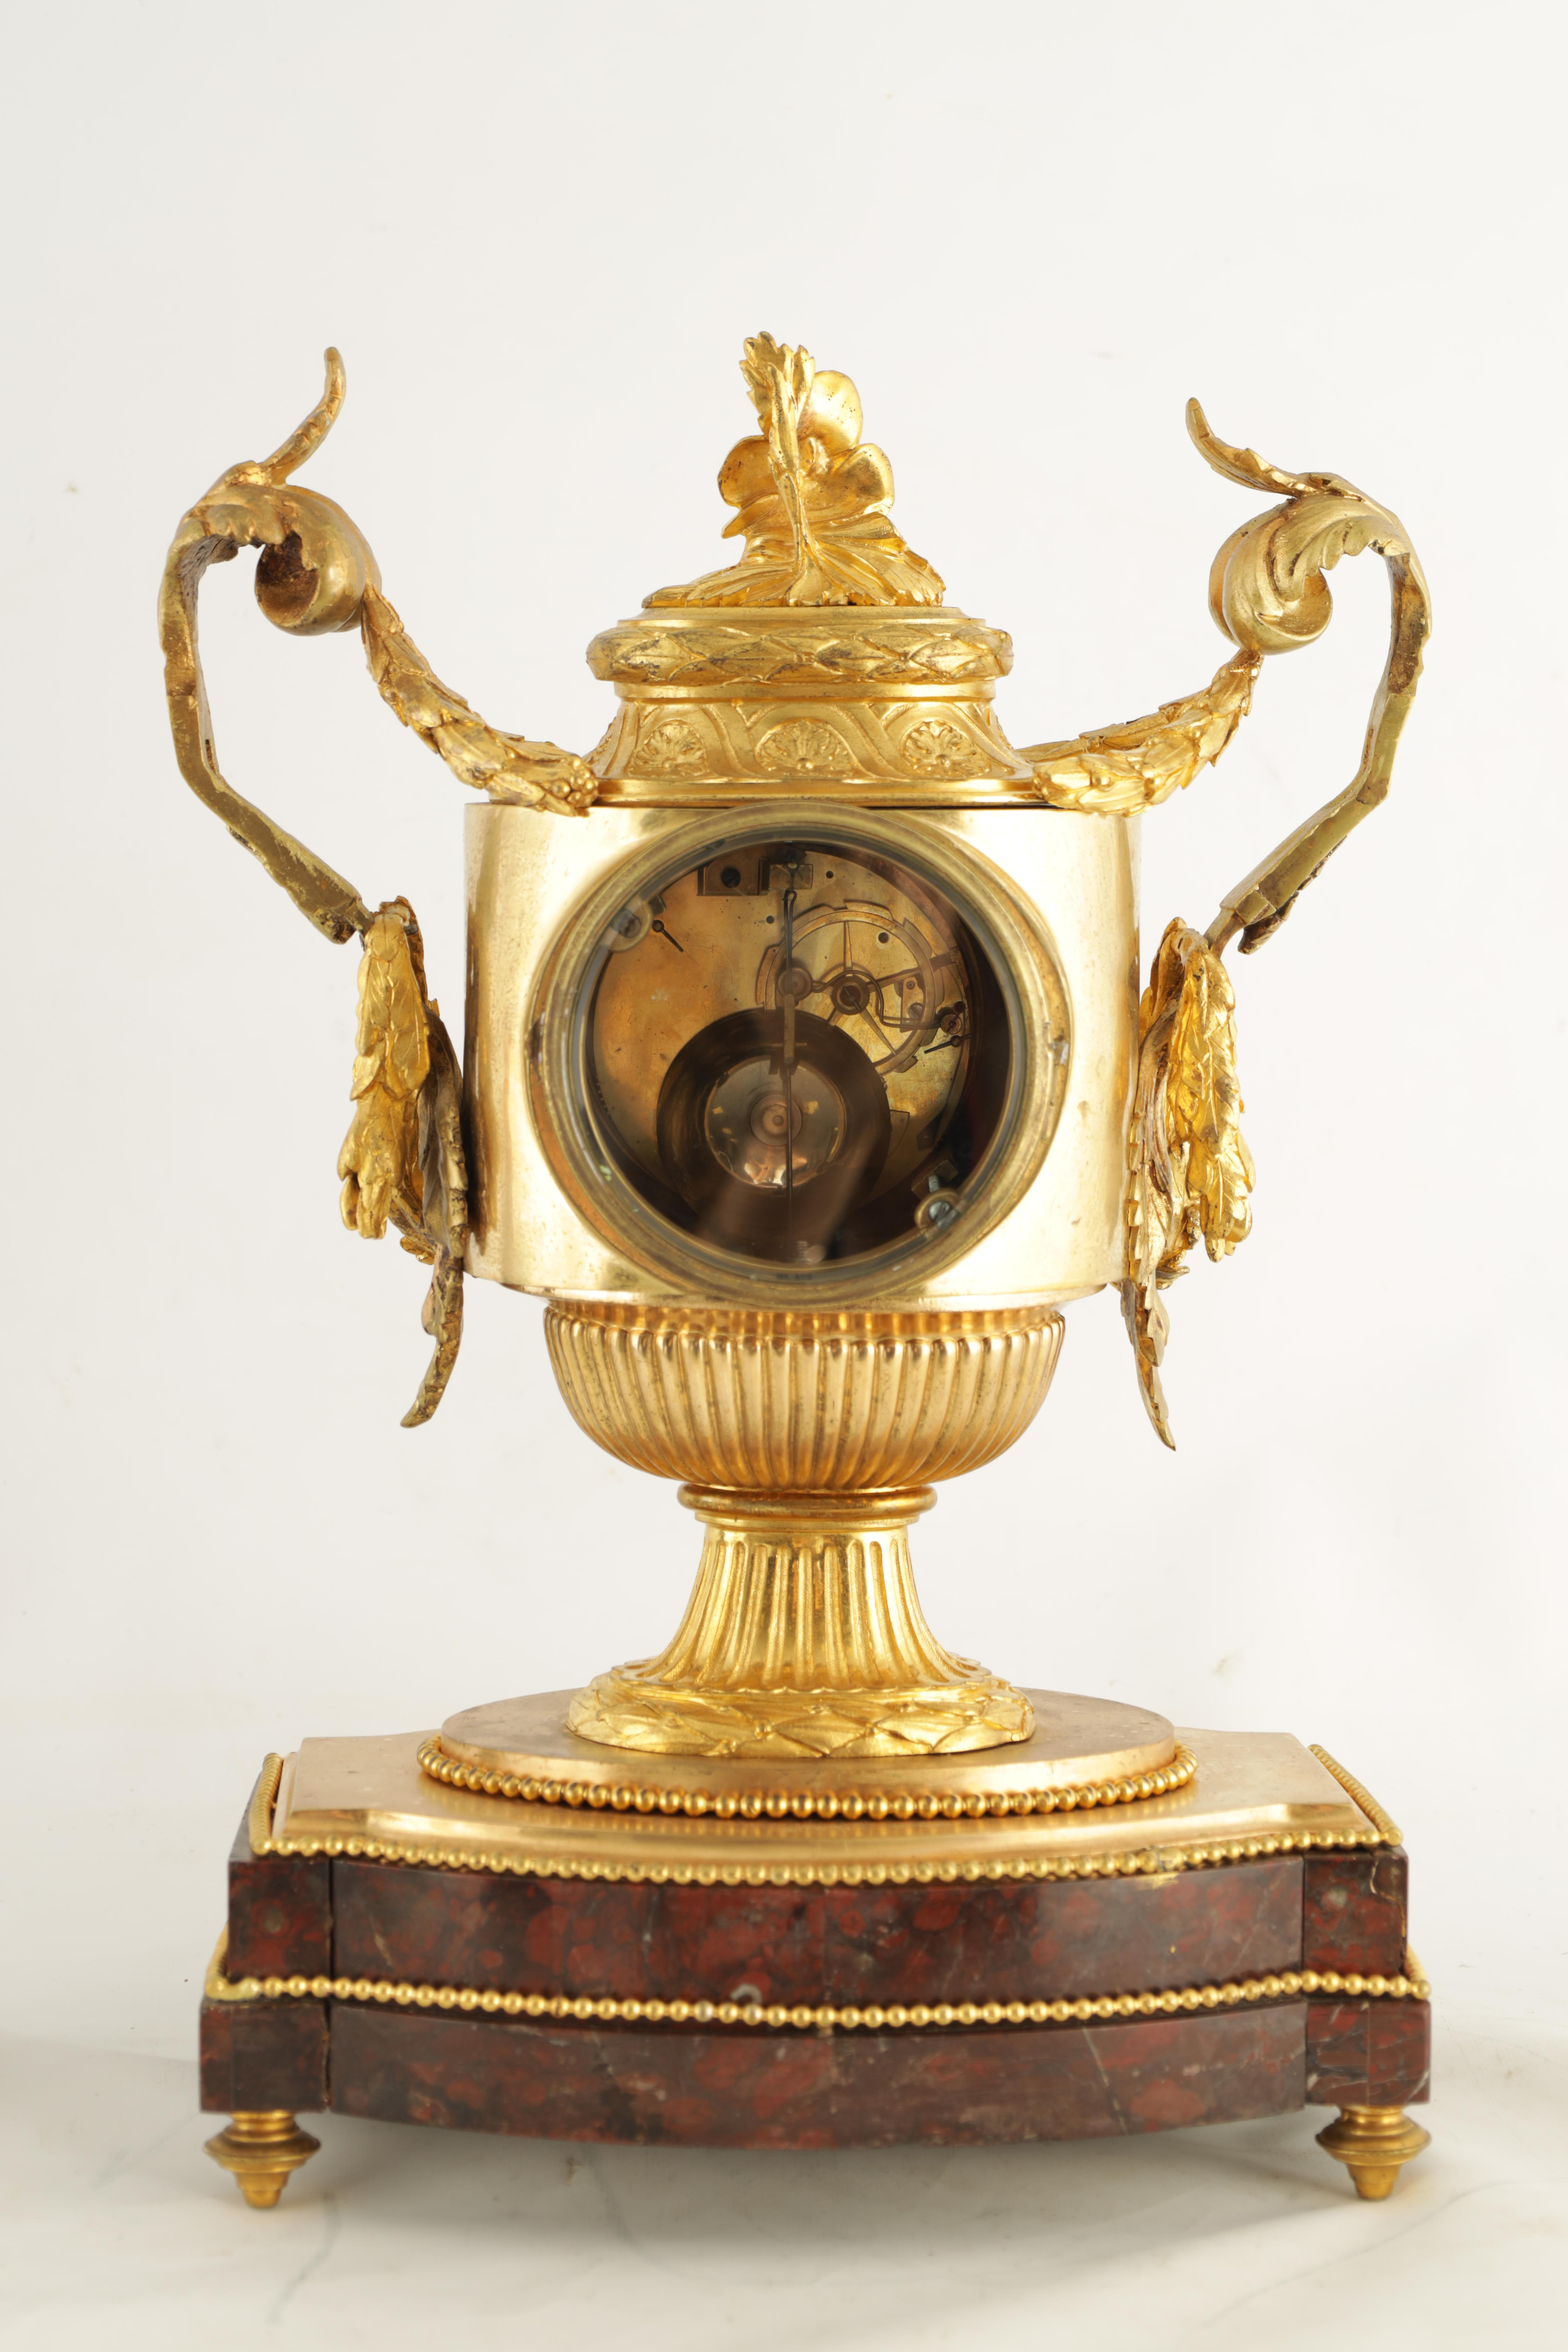 GASTON JOLY, A PARIS AN IMPRESSIVE EARLY 19TH CENTURY FRENCH ORMOLU AND ROUGE MARBLE URN SHAPED - Image 6 of 7